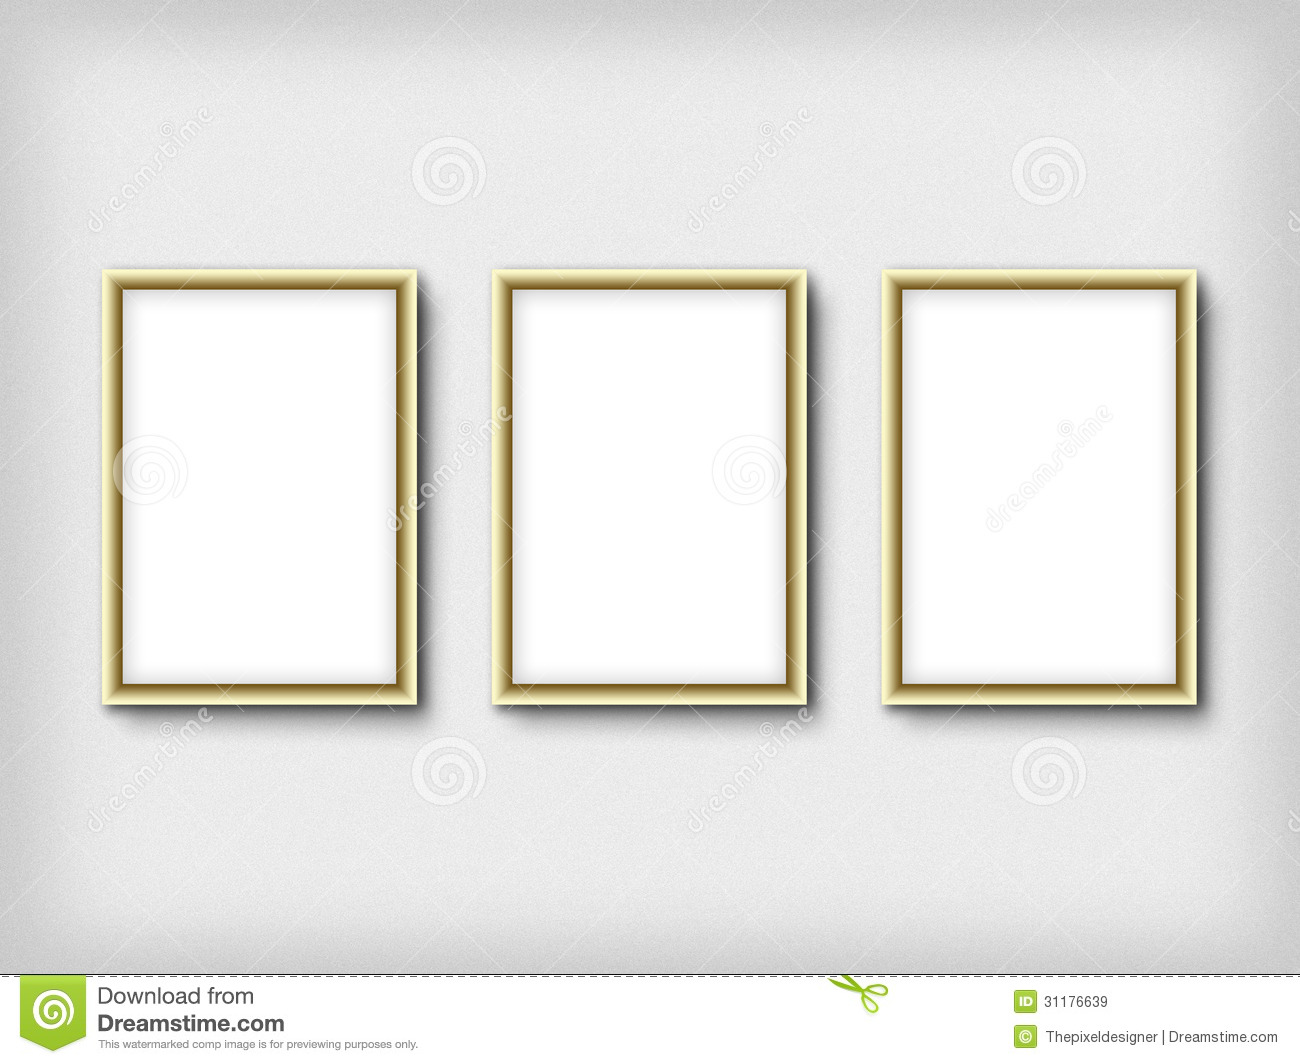 Three Empty Frames On A Wall Royalty Free Stock Images - Image ...: dreamstime.com/royalty-free-stock-images-three-empty-frames-wall...